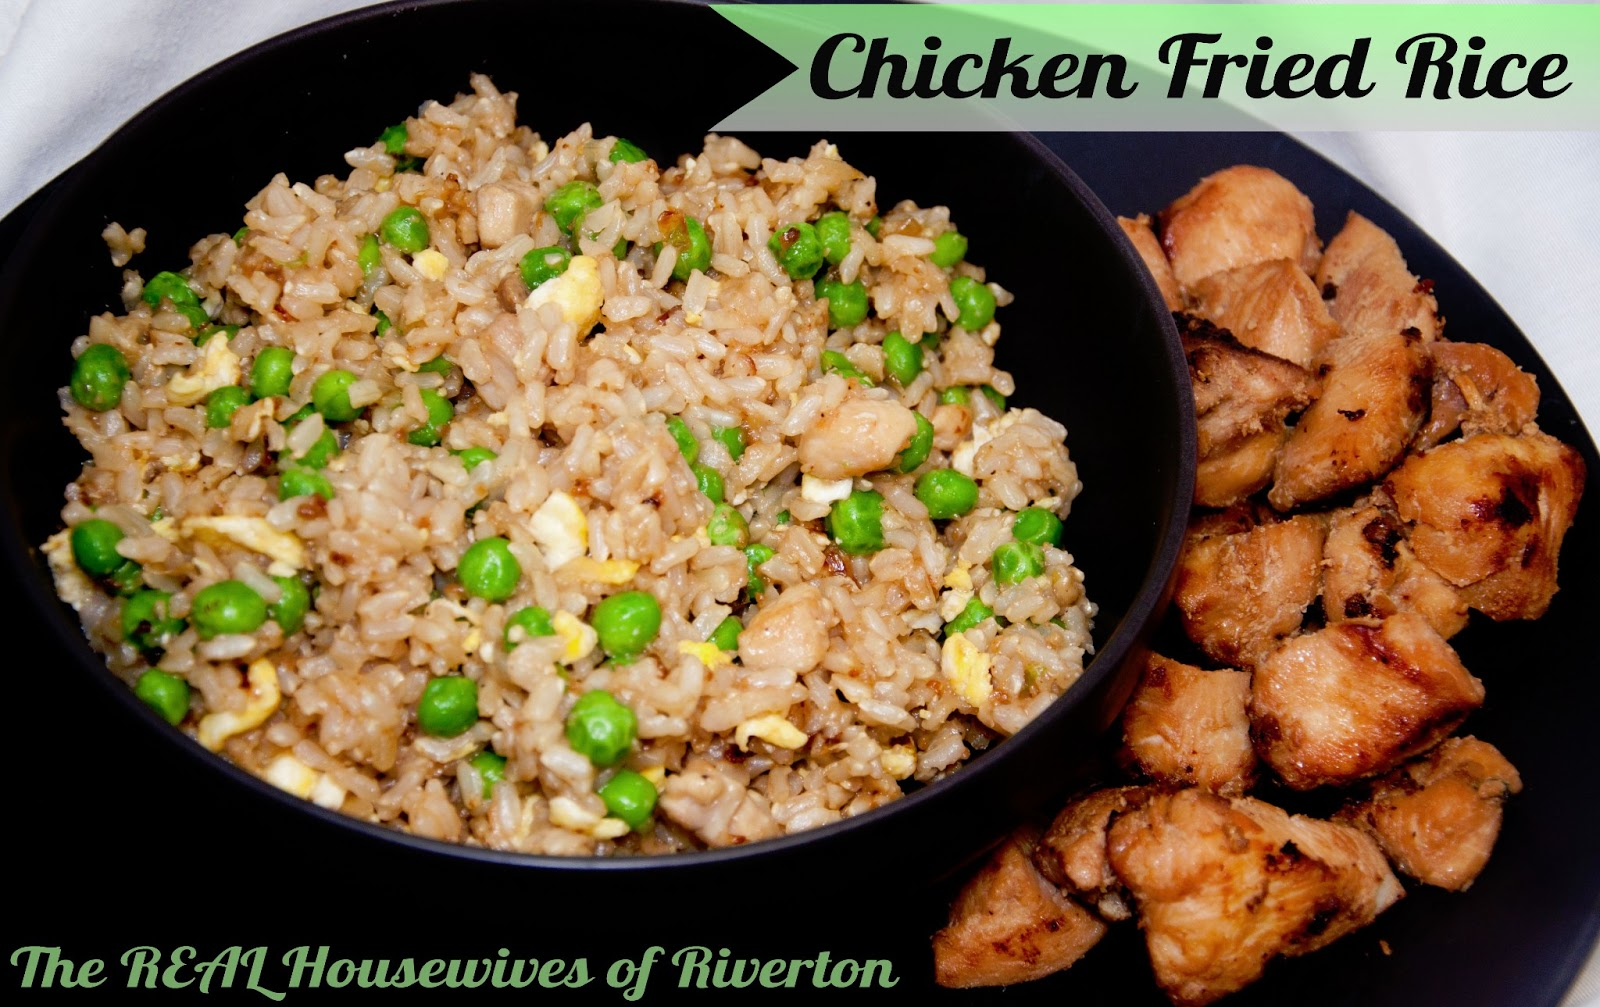 Chicken Fried Rice - Housewives of Riverton